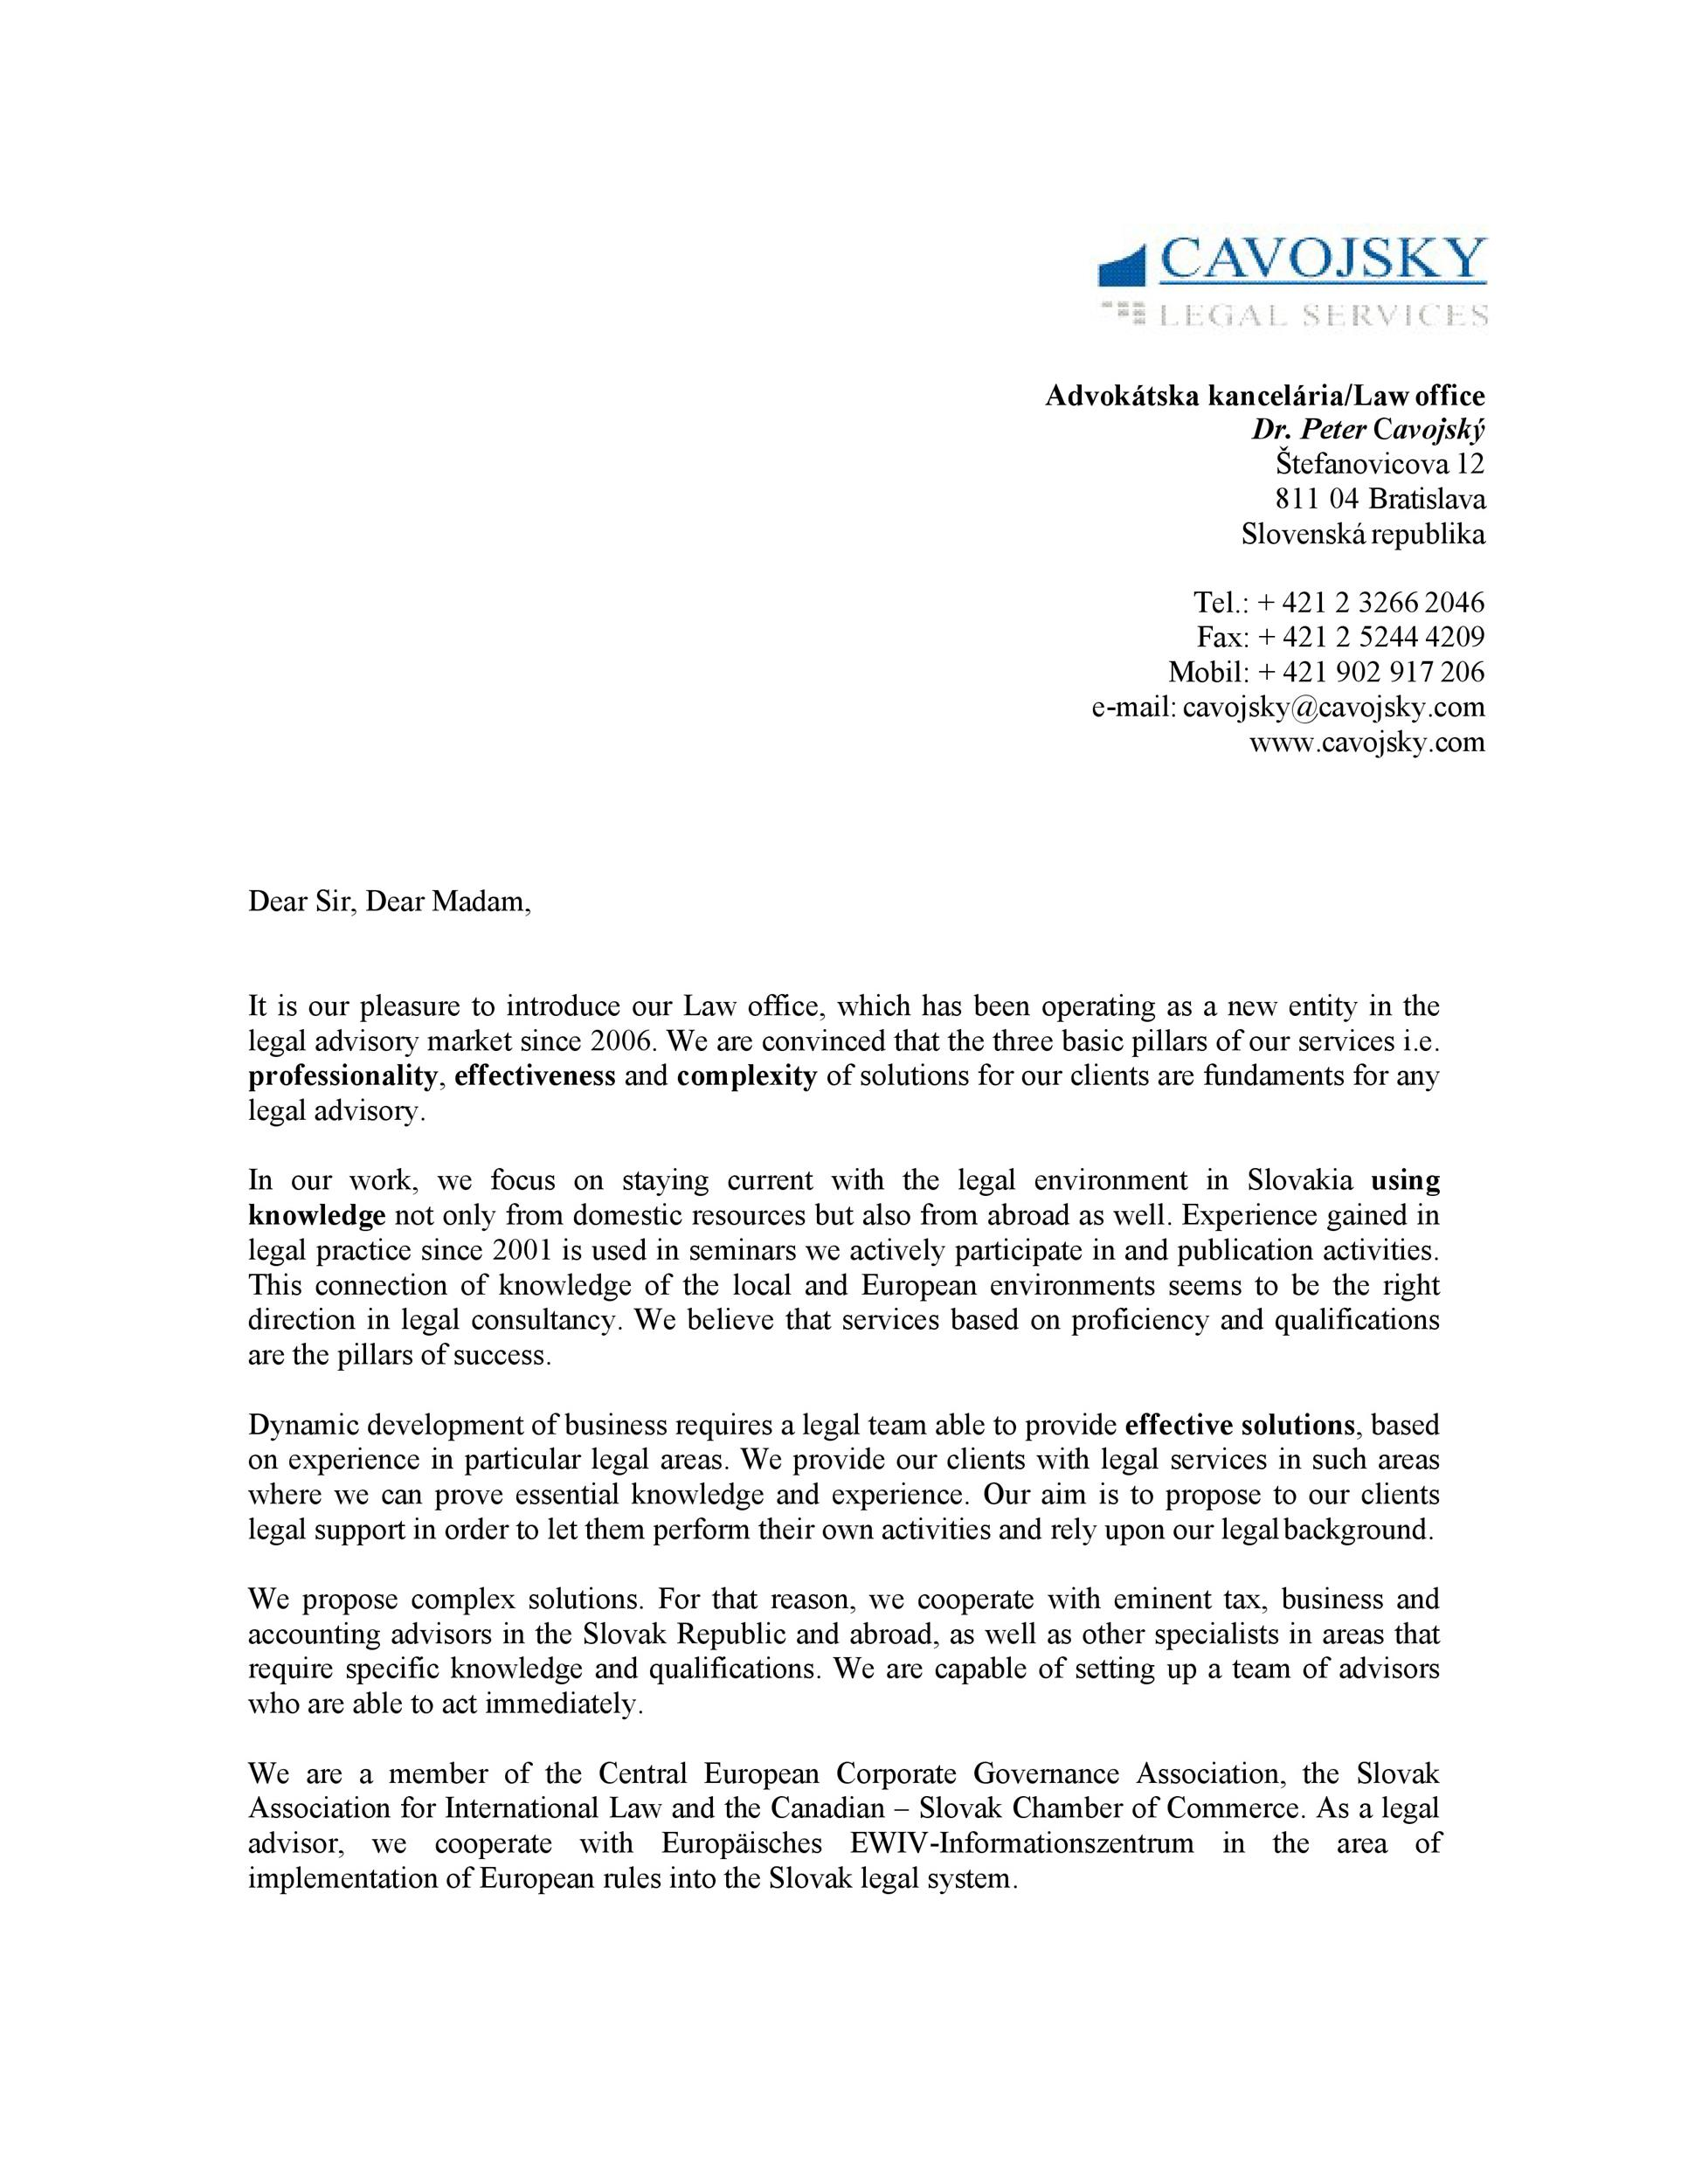 Free business introduction letter 14